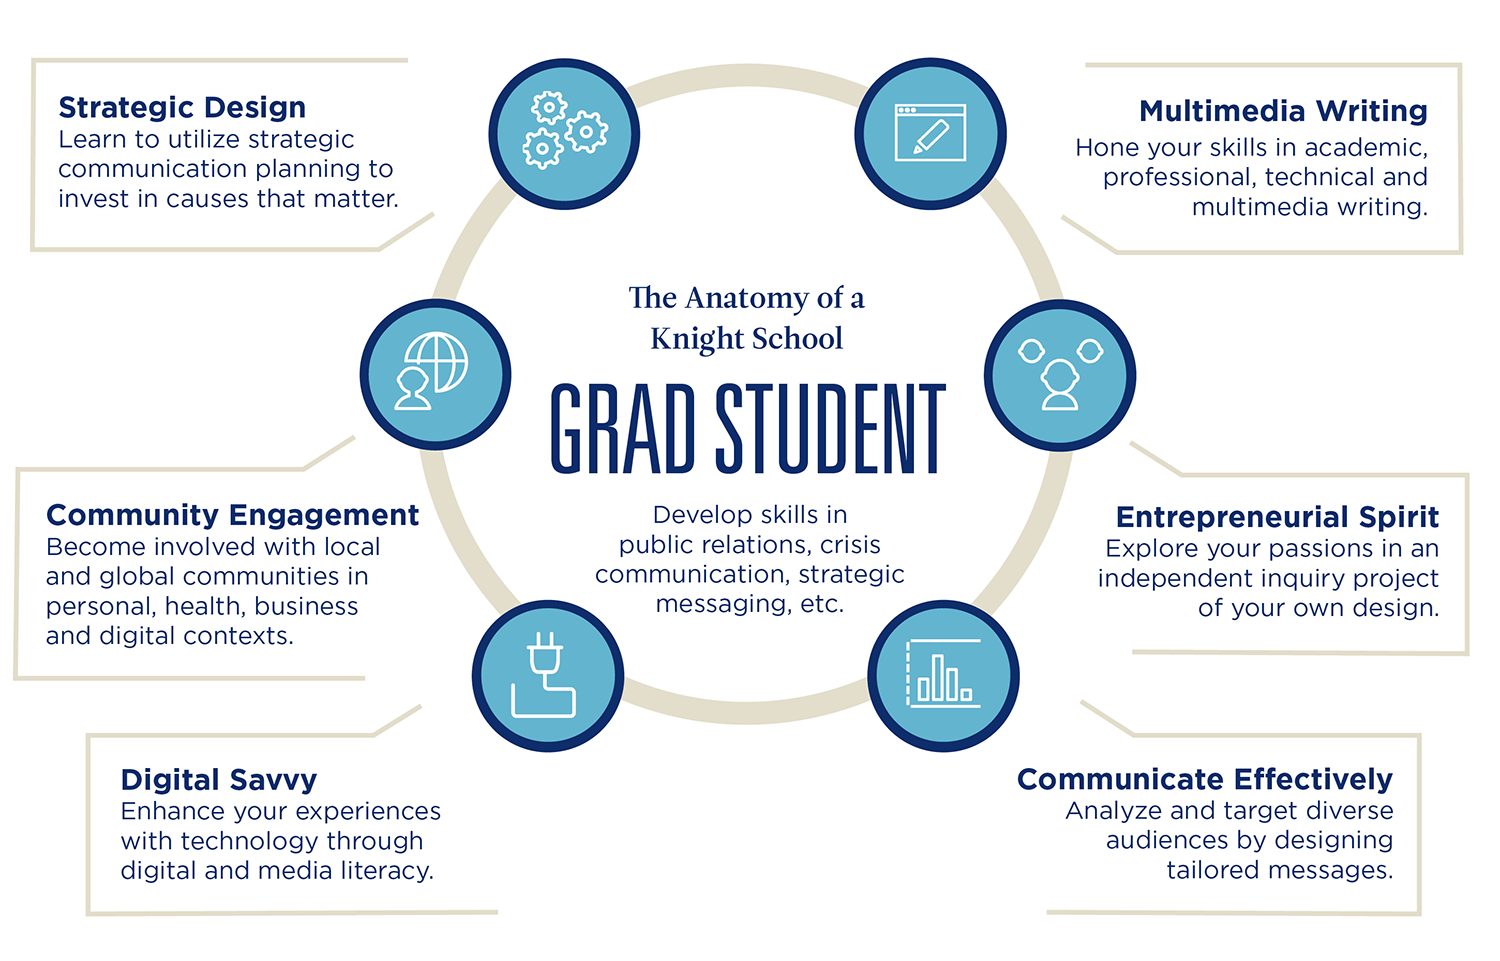 Knight School grad student infographic